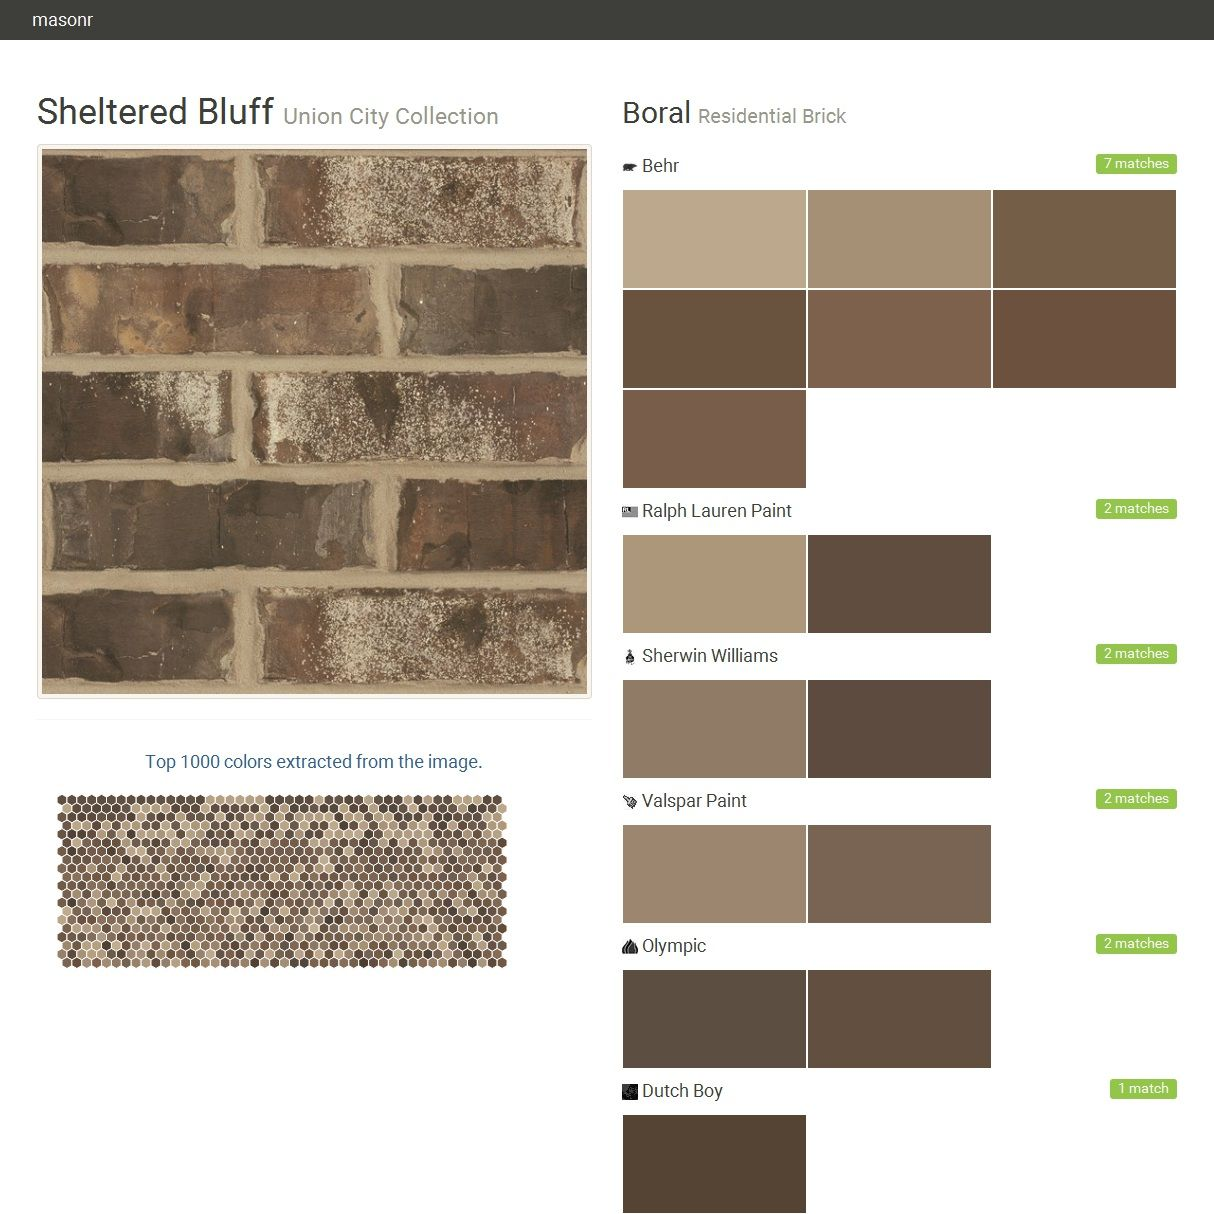 Sheltered Bluff. Union City Collection. Residential Brick. Boral ...